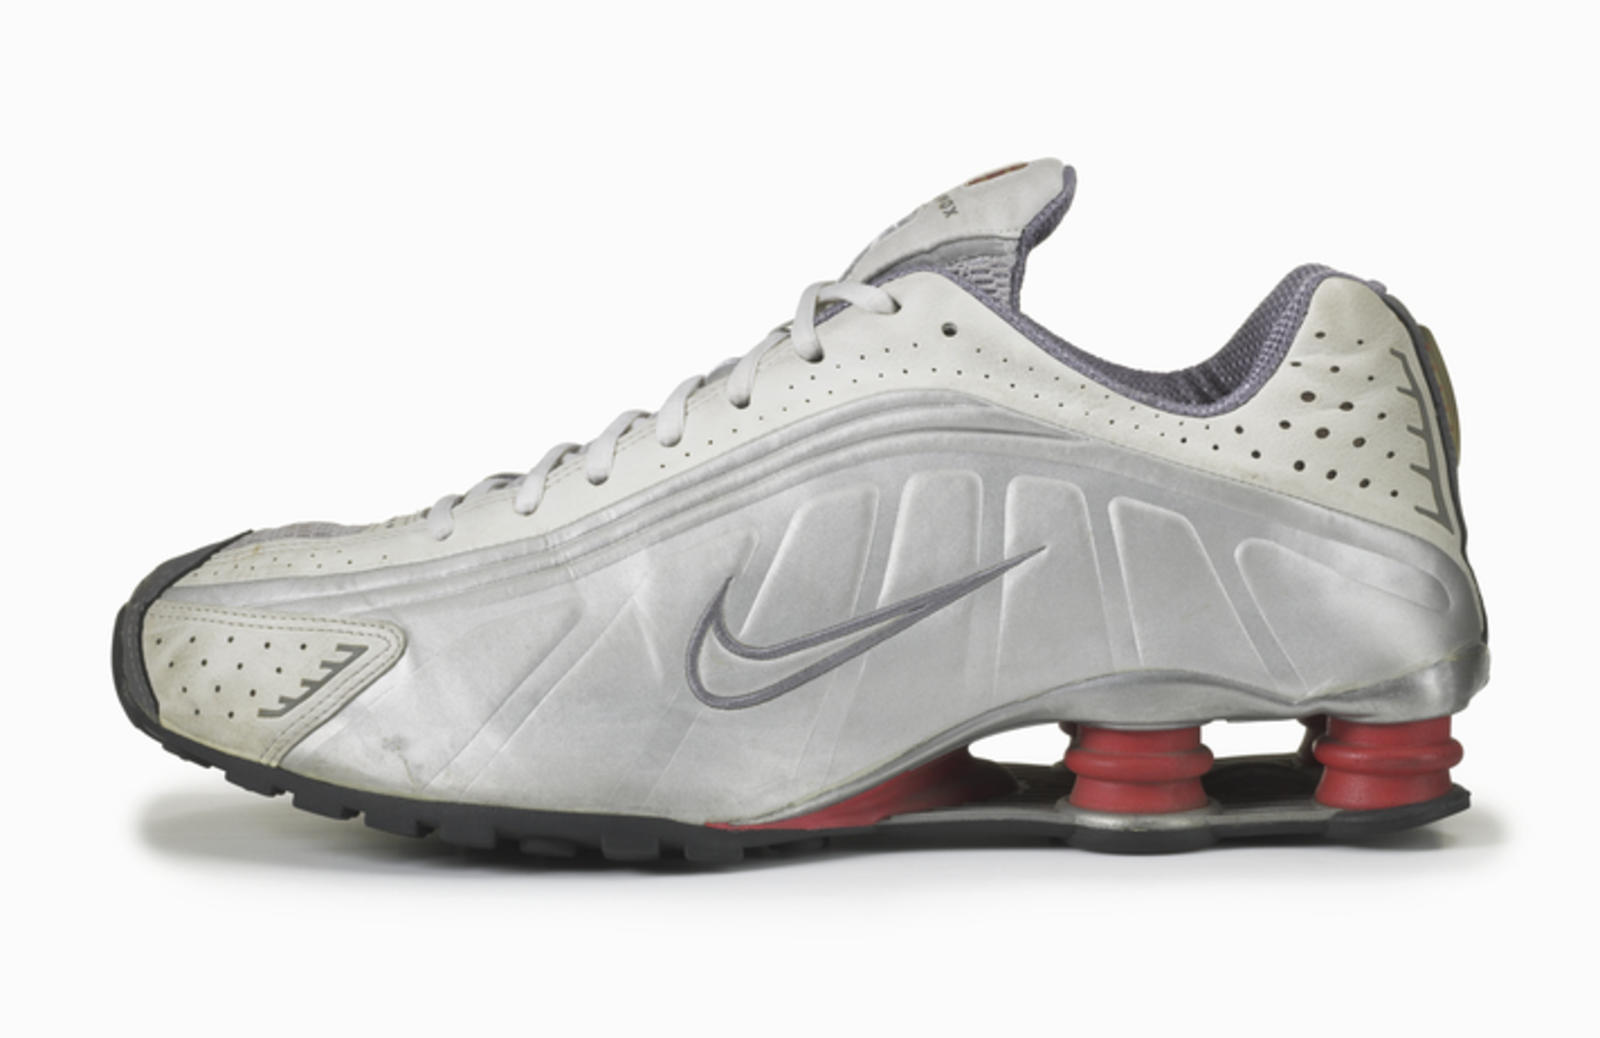 competitive price c663c 0af9b Nike shox r4 2000 - WearTesters